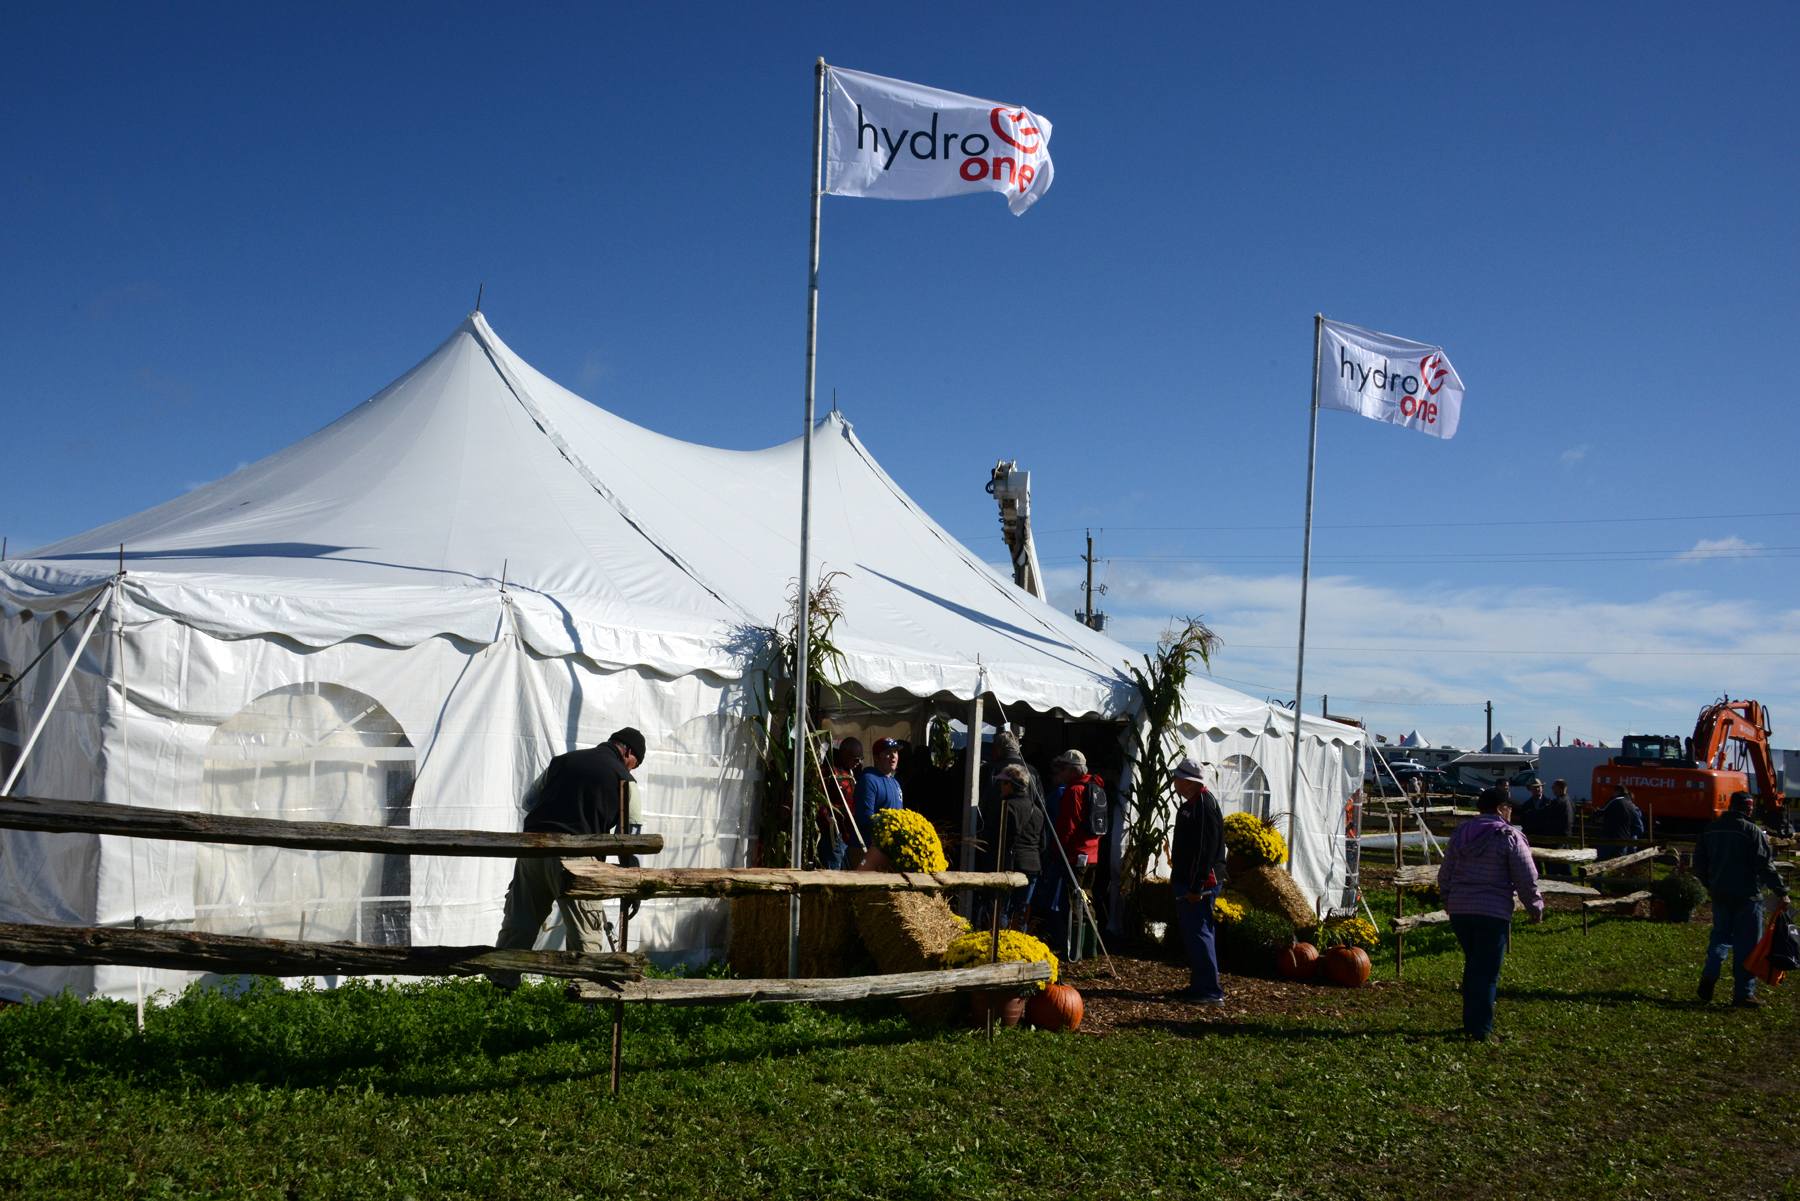 Image of Hydro One Tent at Plowing Event